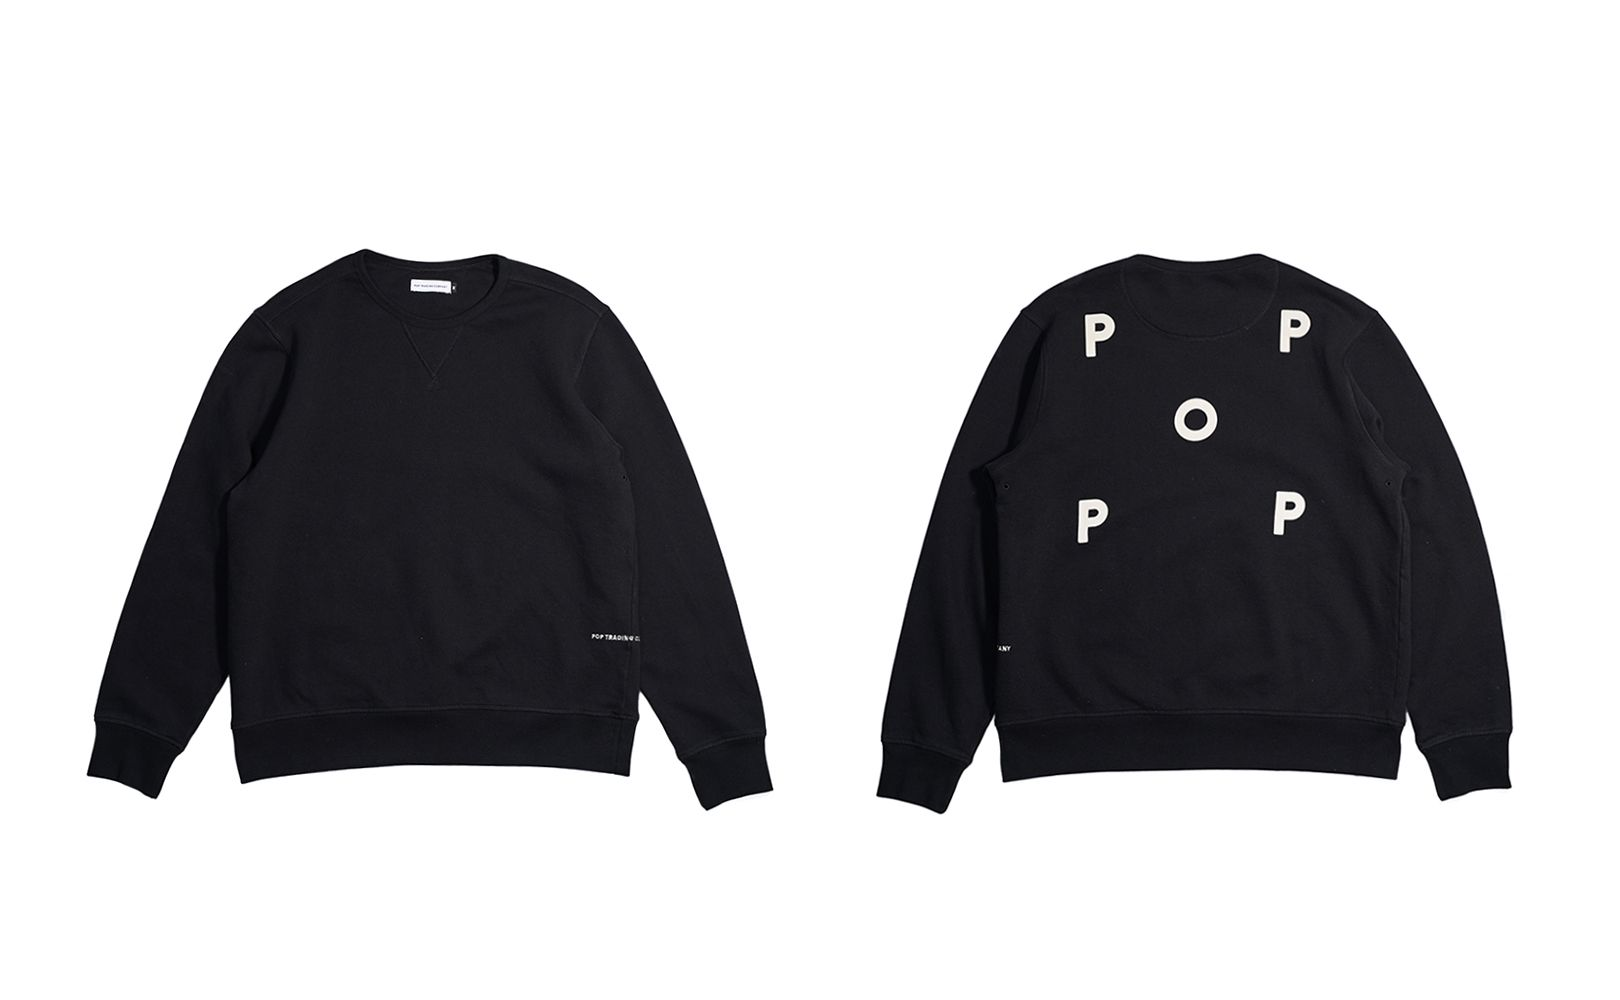 pop-trading-company-aw17-product-9-logo-crewneck-black